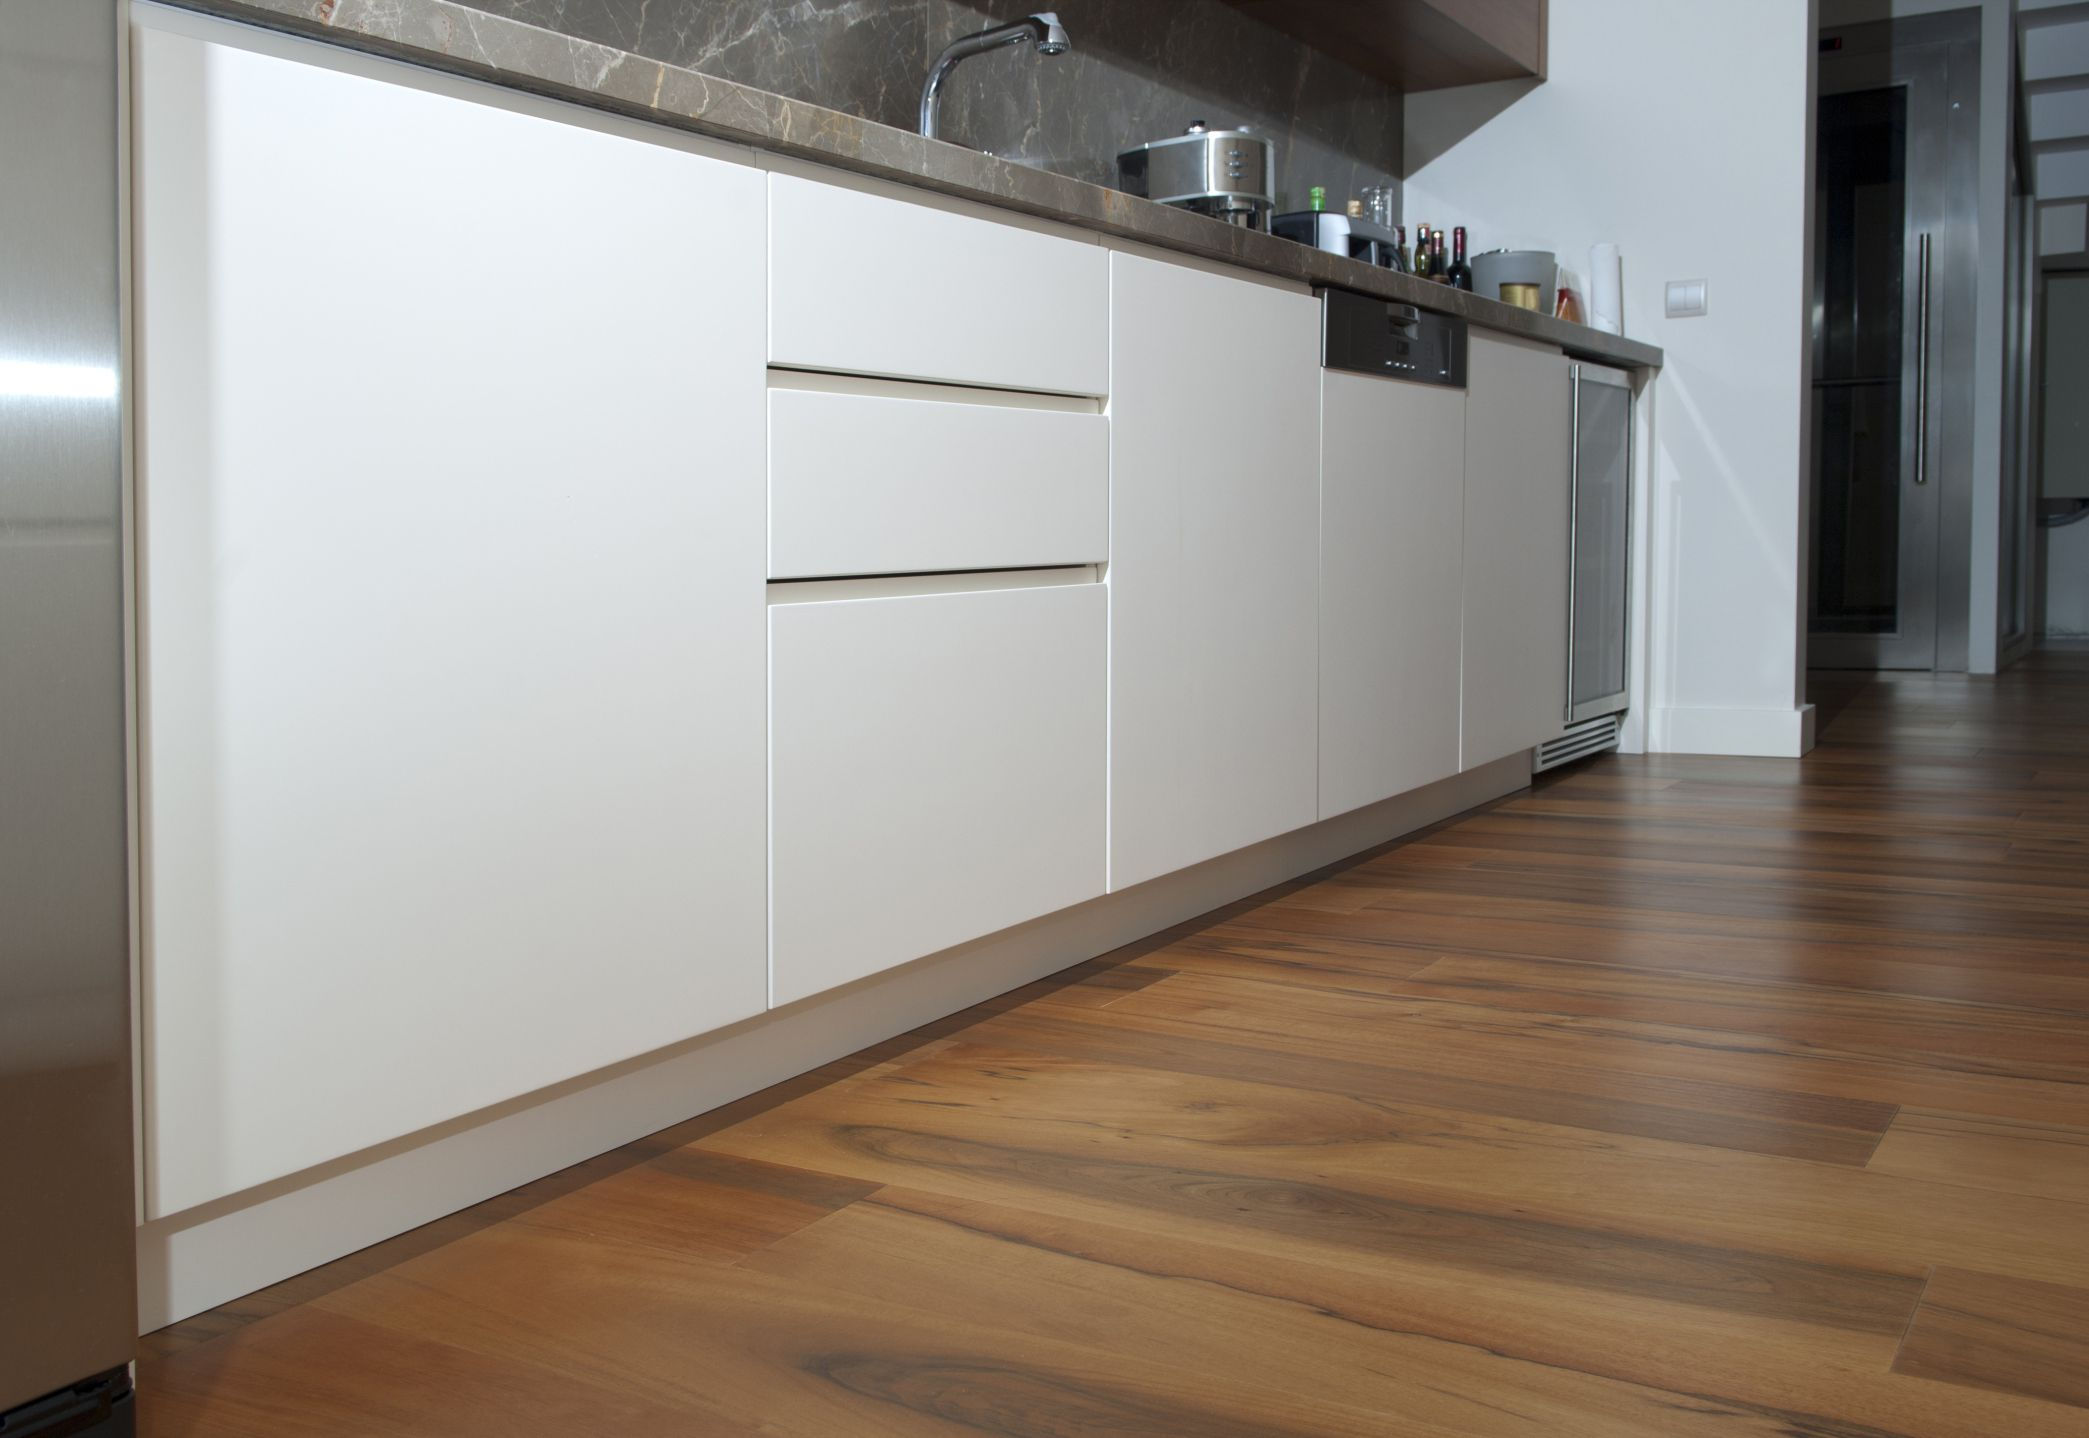 Laminate Flooring Kitchen | Laminate Flooring Cost Guide What You Should Pay